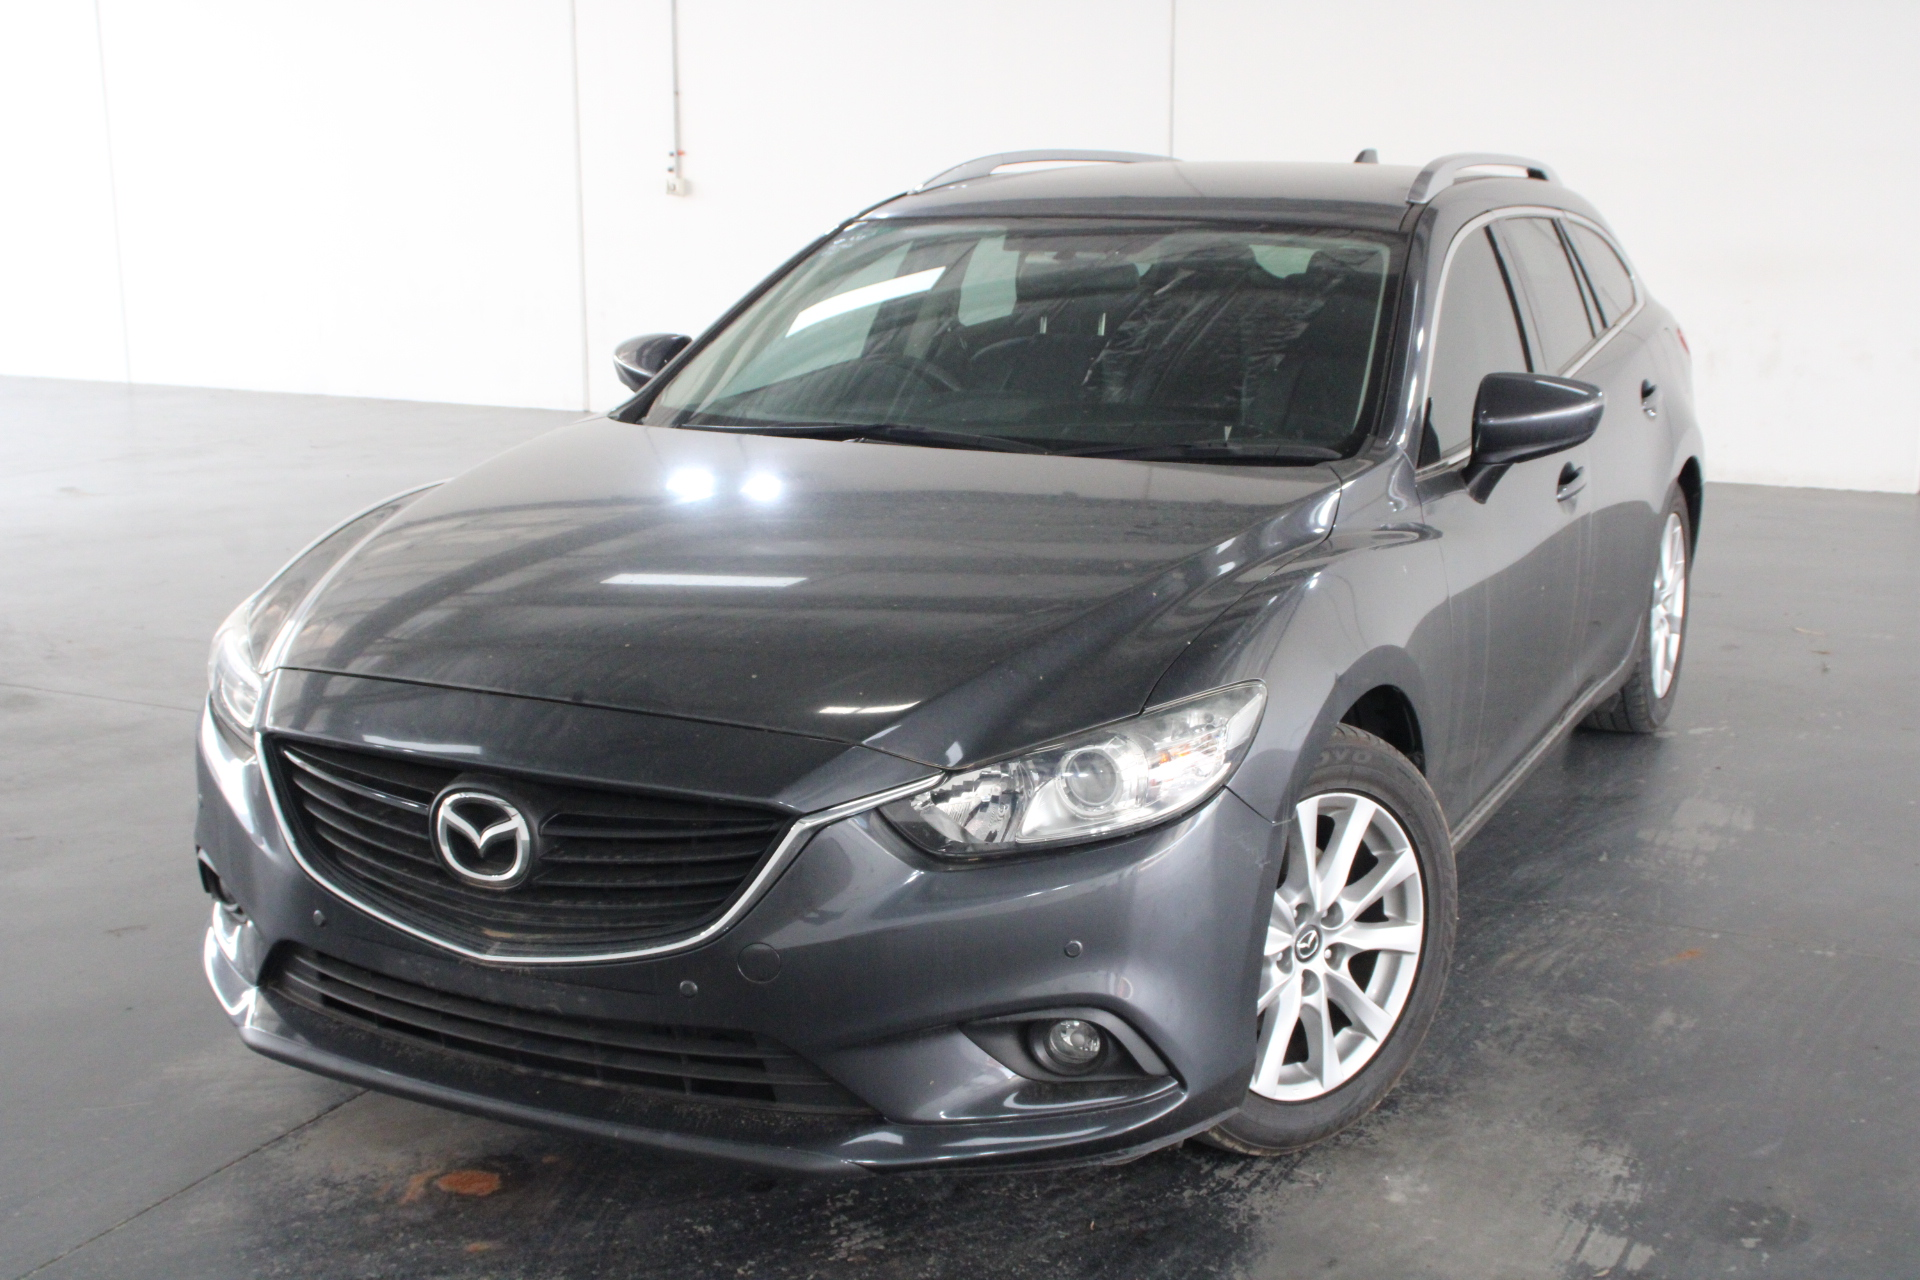 2014 Mazda 6 Touring GJ Automatic Wagon